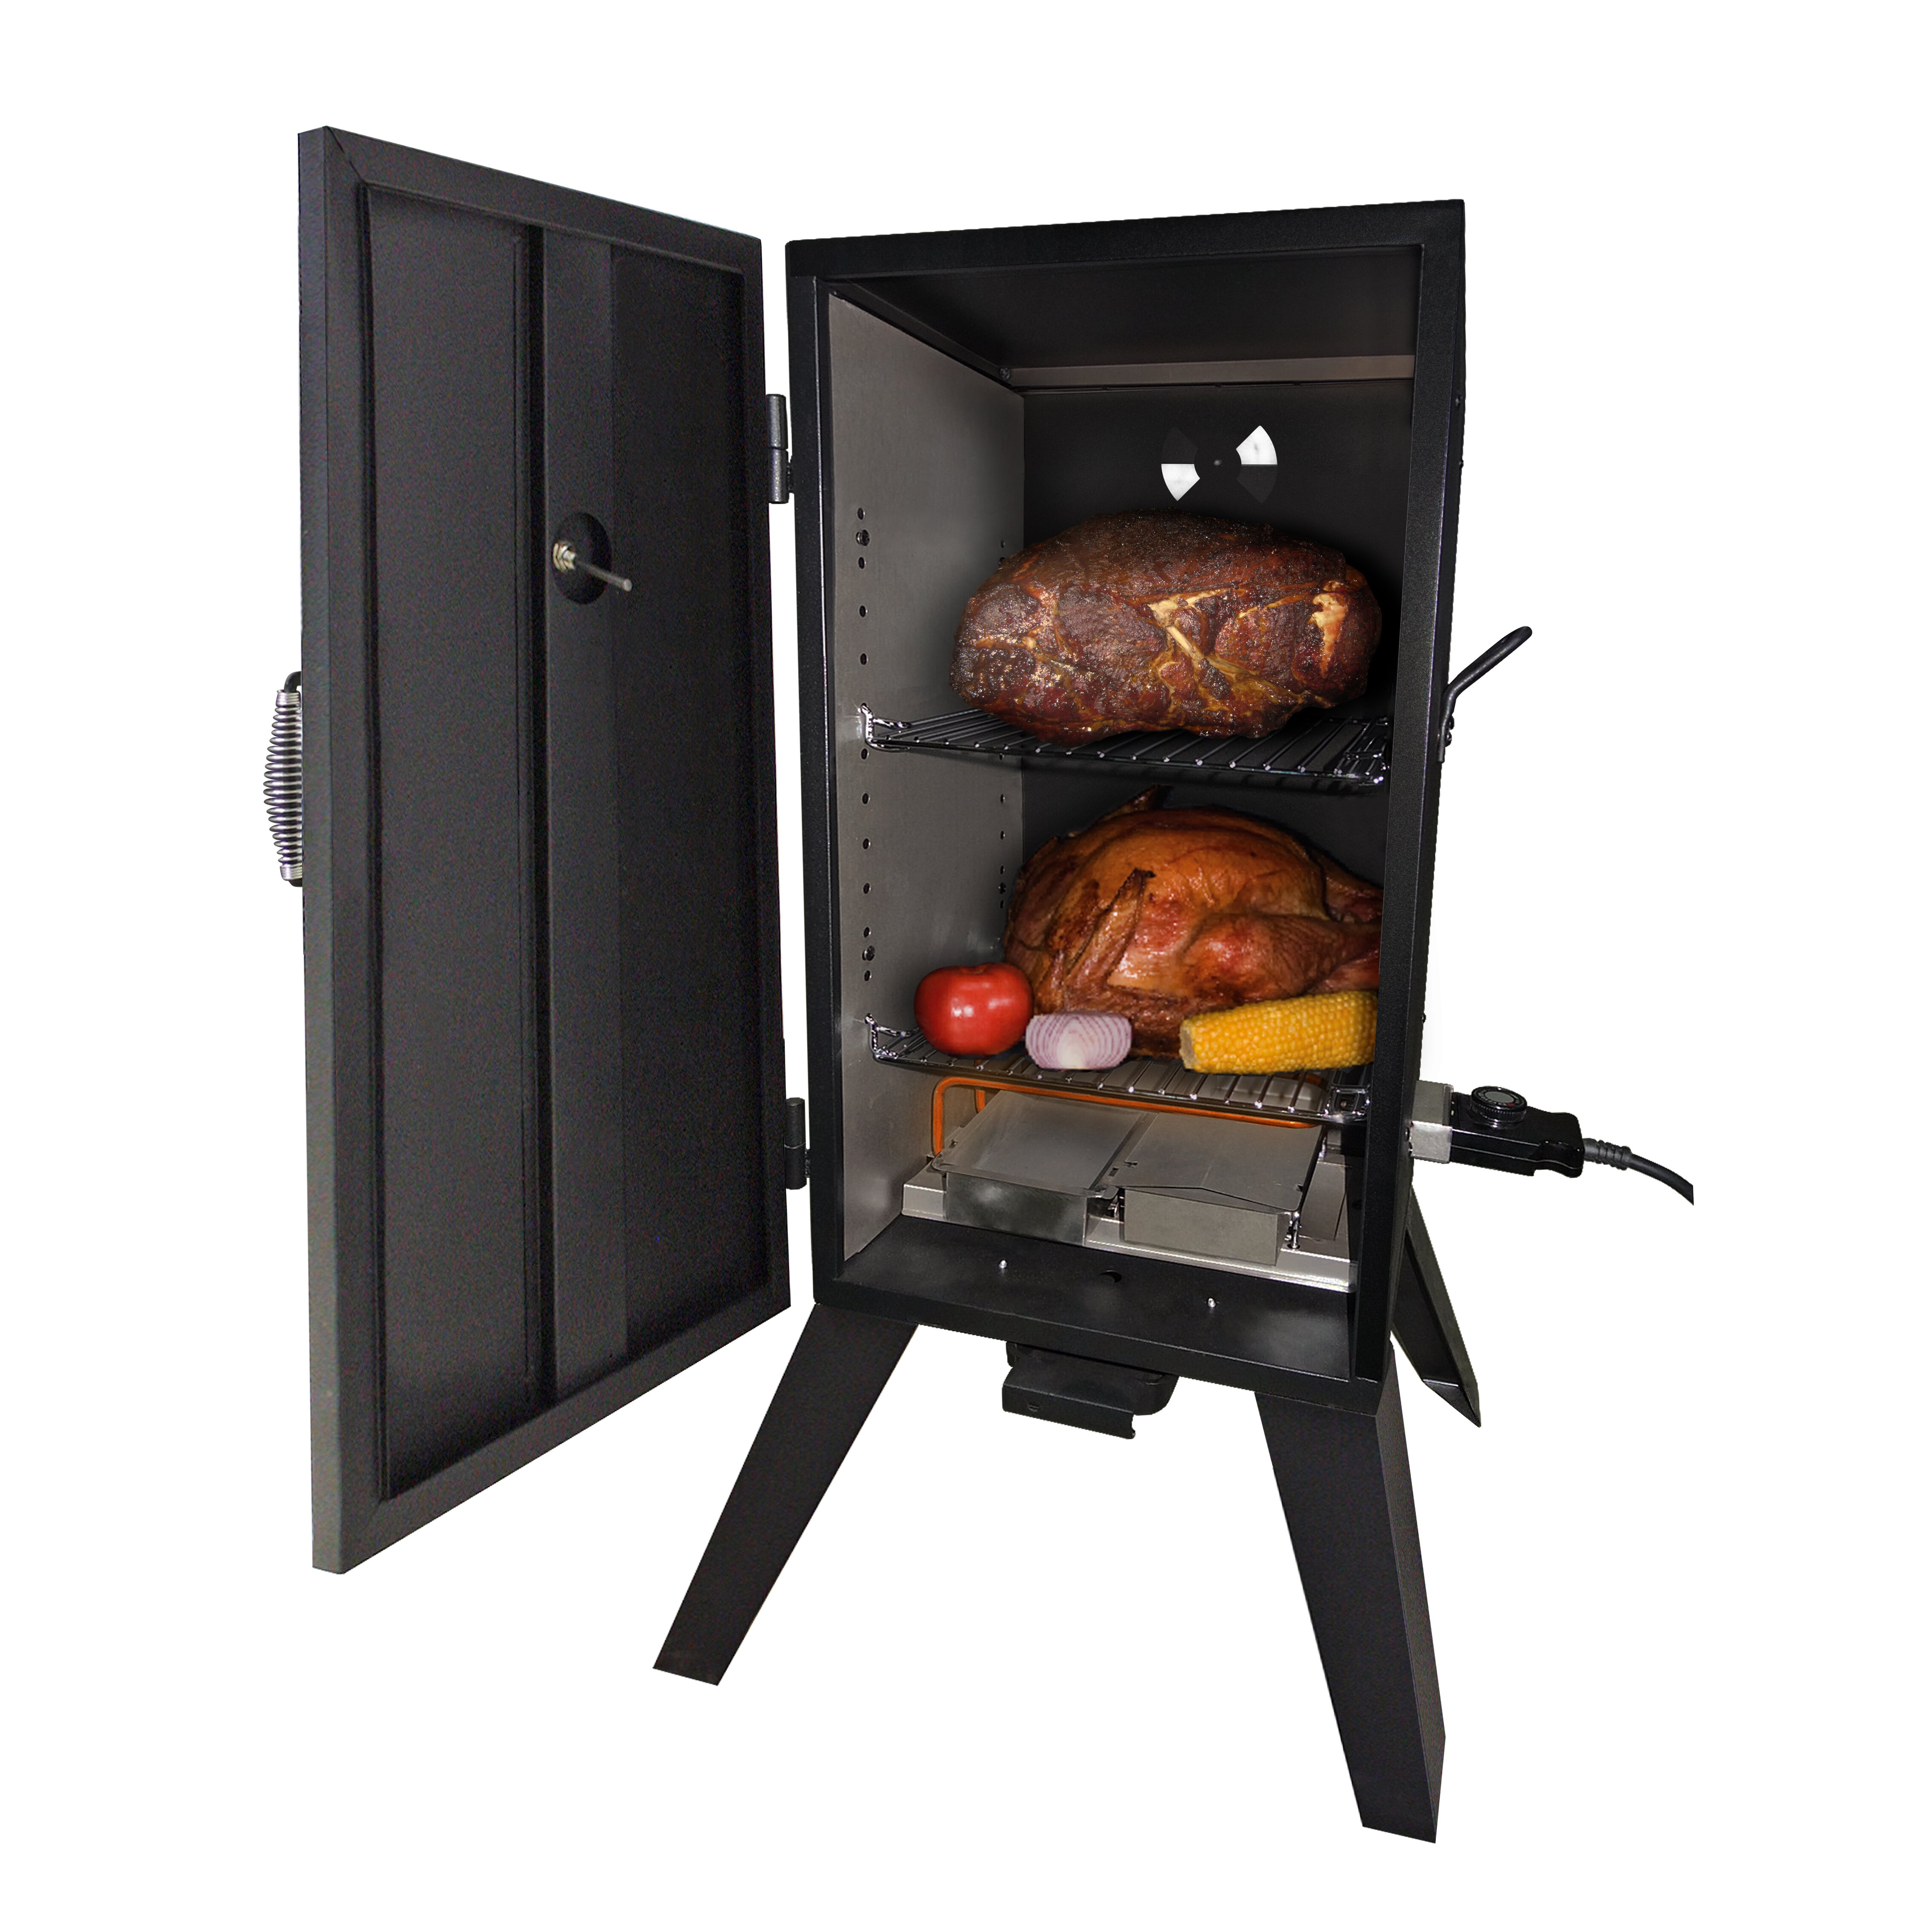 Outdoor halloween decorations for trees - Outdoor Outdoor Cooking Electric Smokers Outdoor Leisure Products